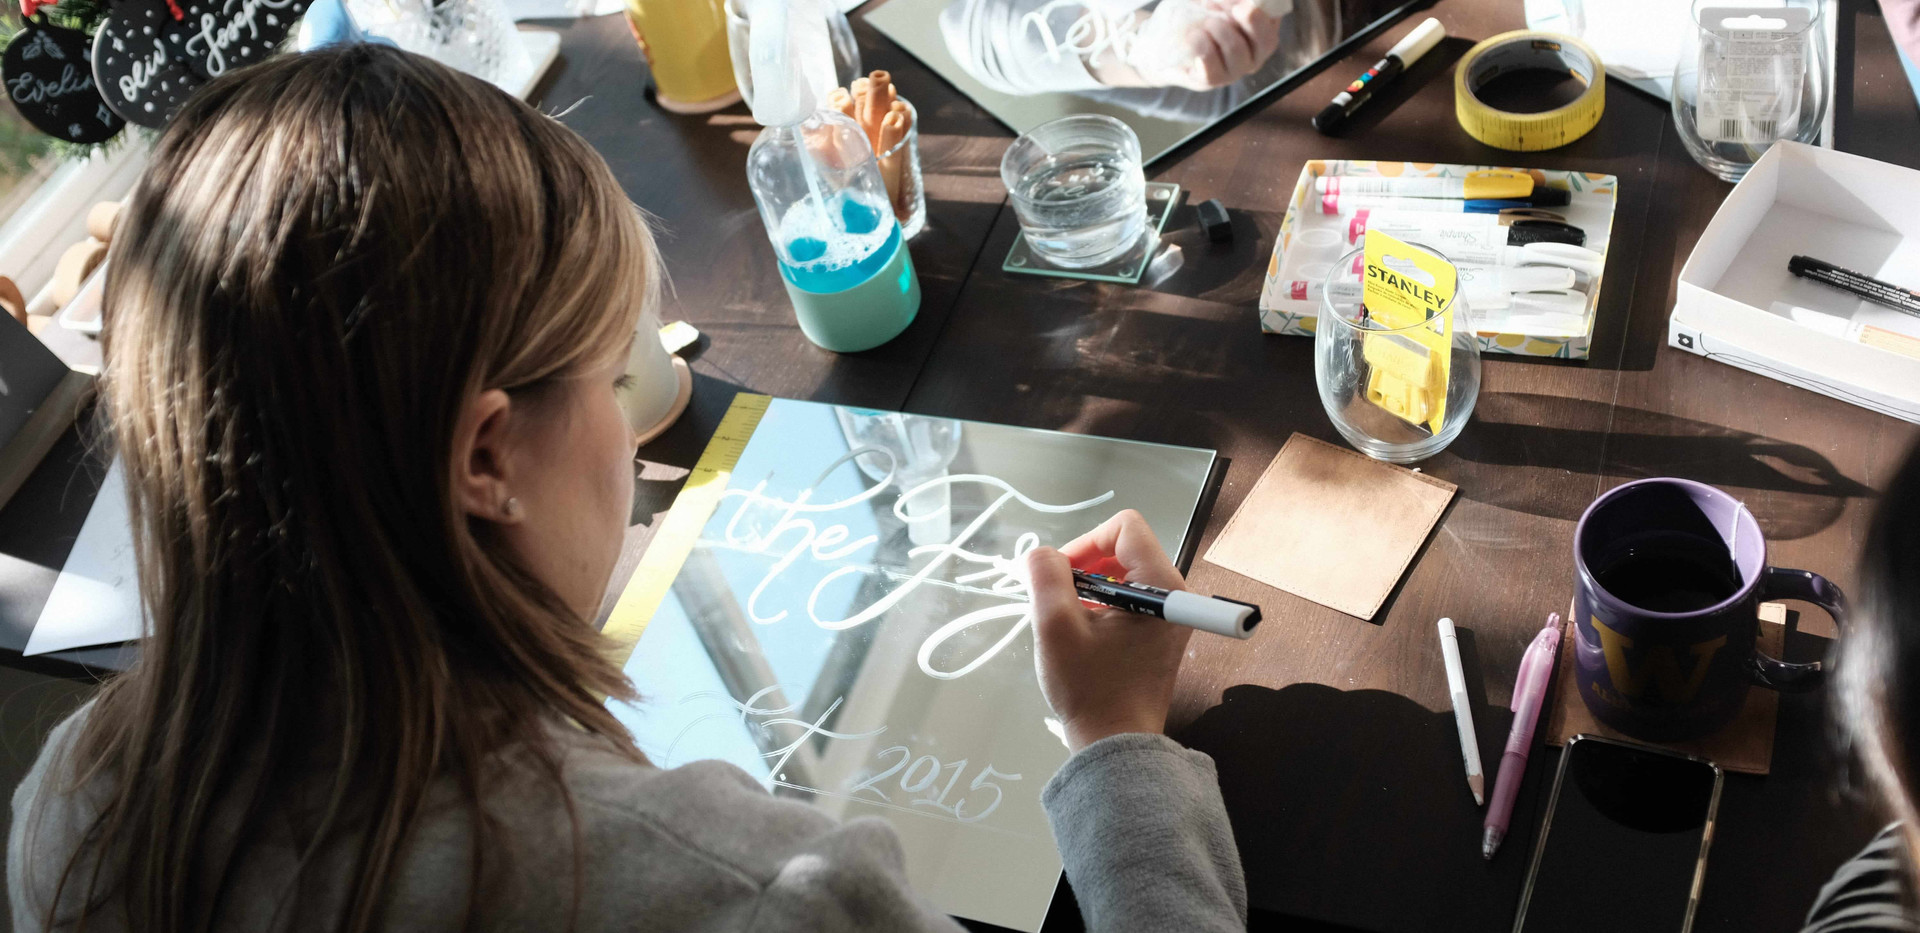 calligraphy-on-mirror-bay-area-workshop.